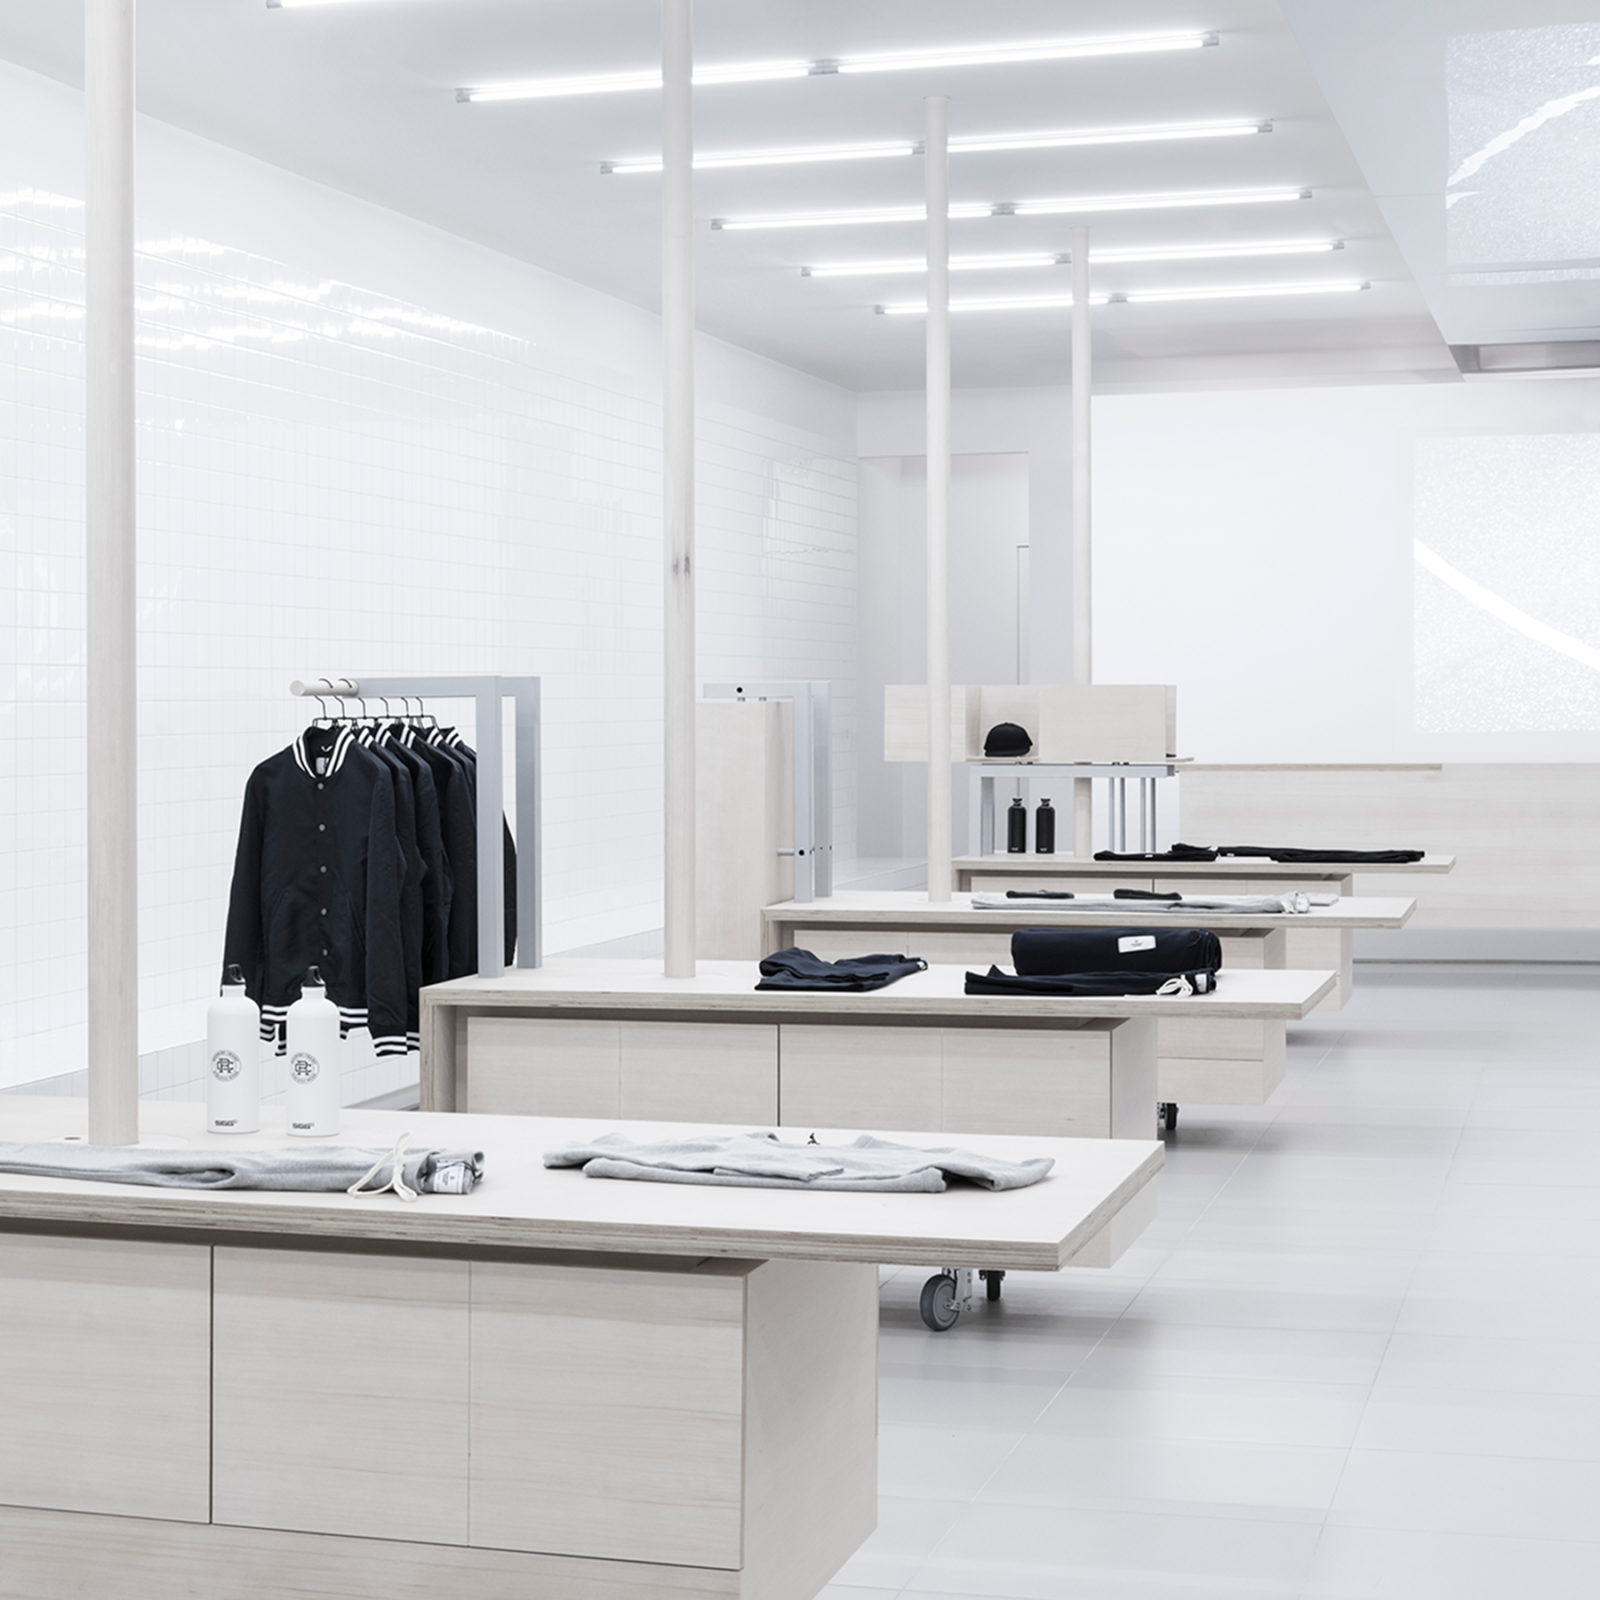 Reigning Champ Robson Street Flagship Store